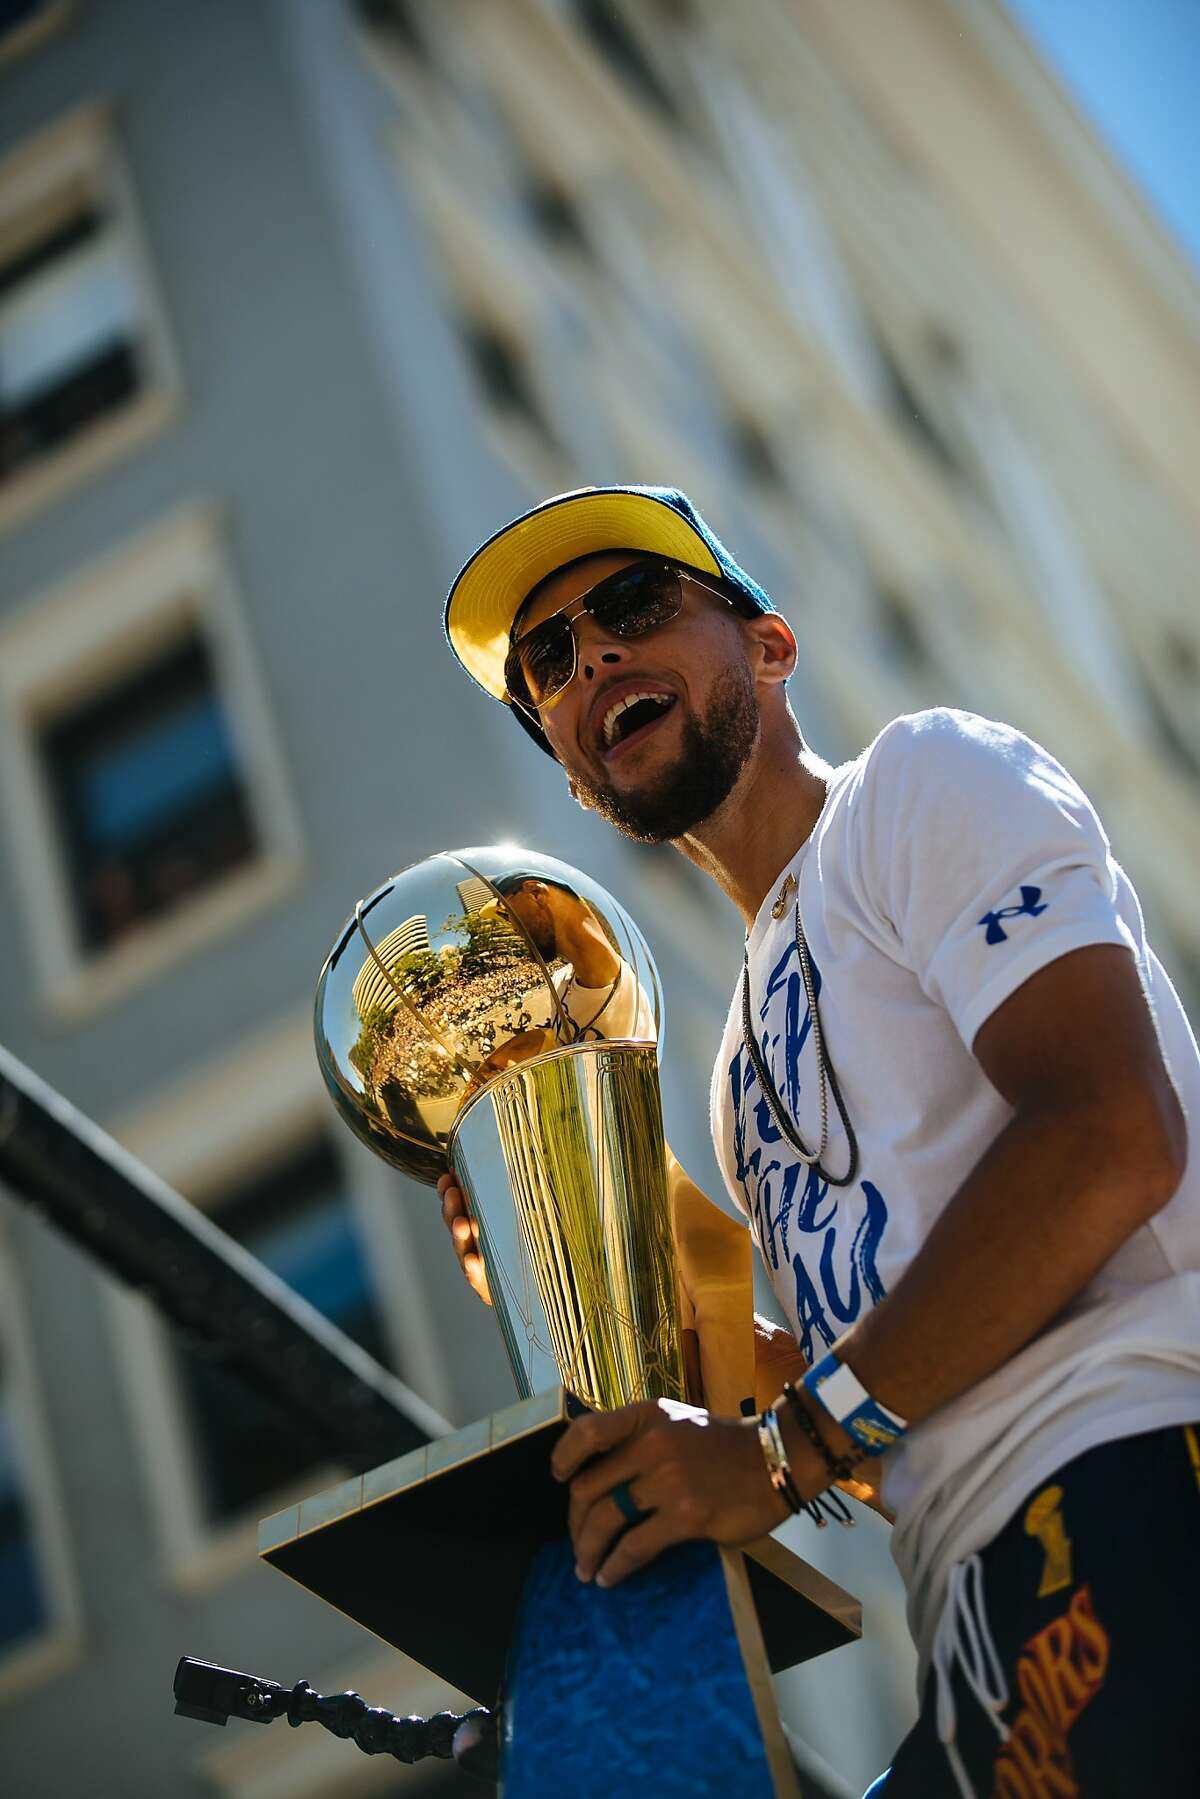 Steph Curry, born Wardell Stephen Curry II, was named after his father, Wardell Stephen Curry.